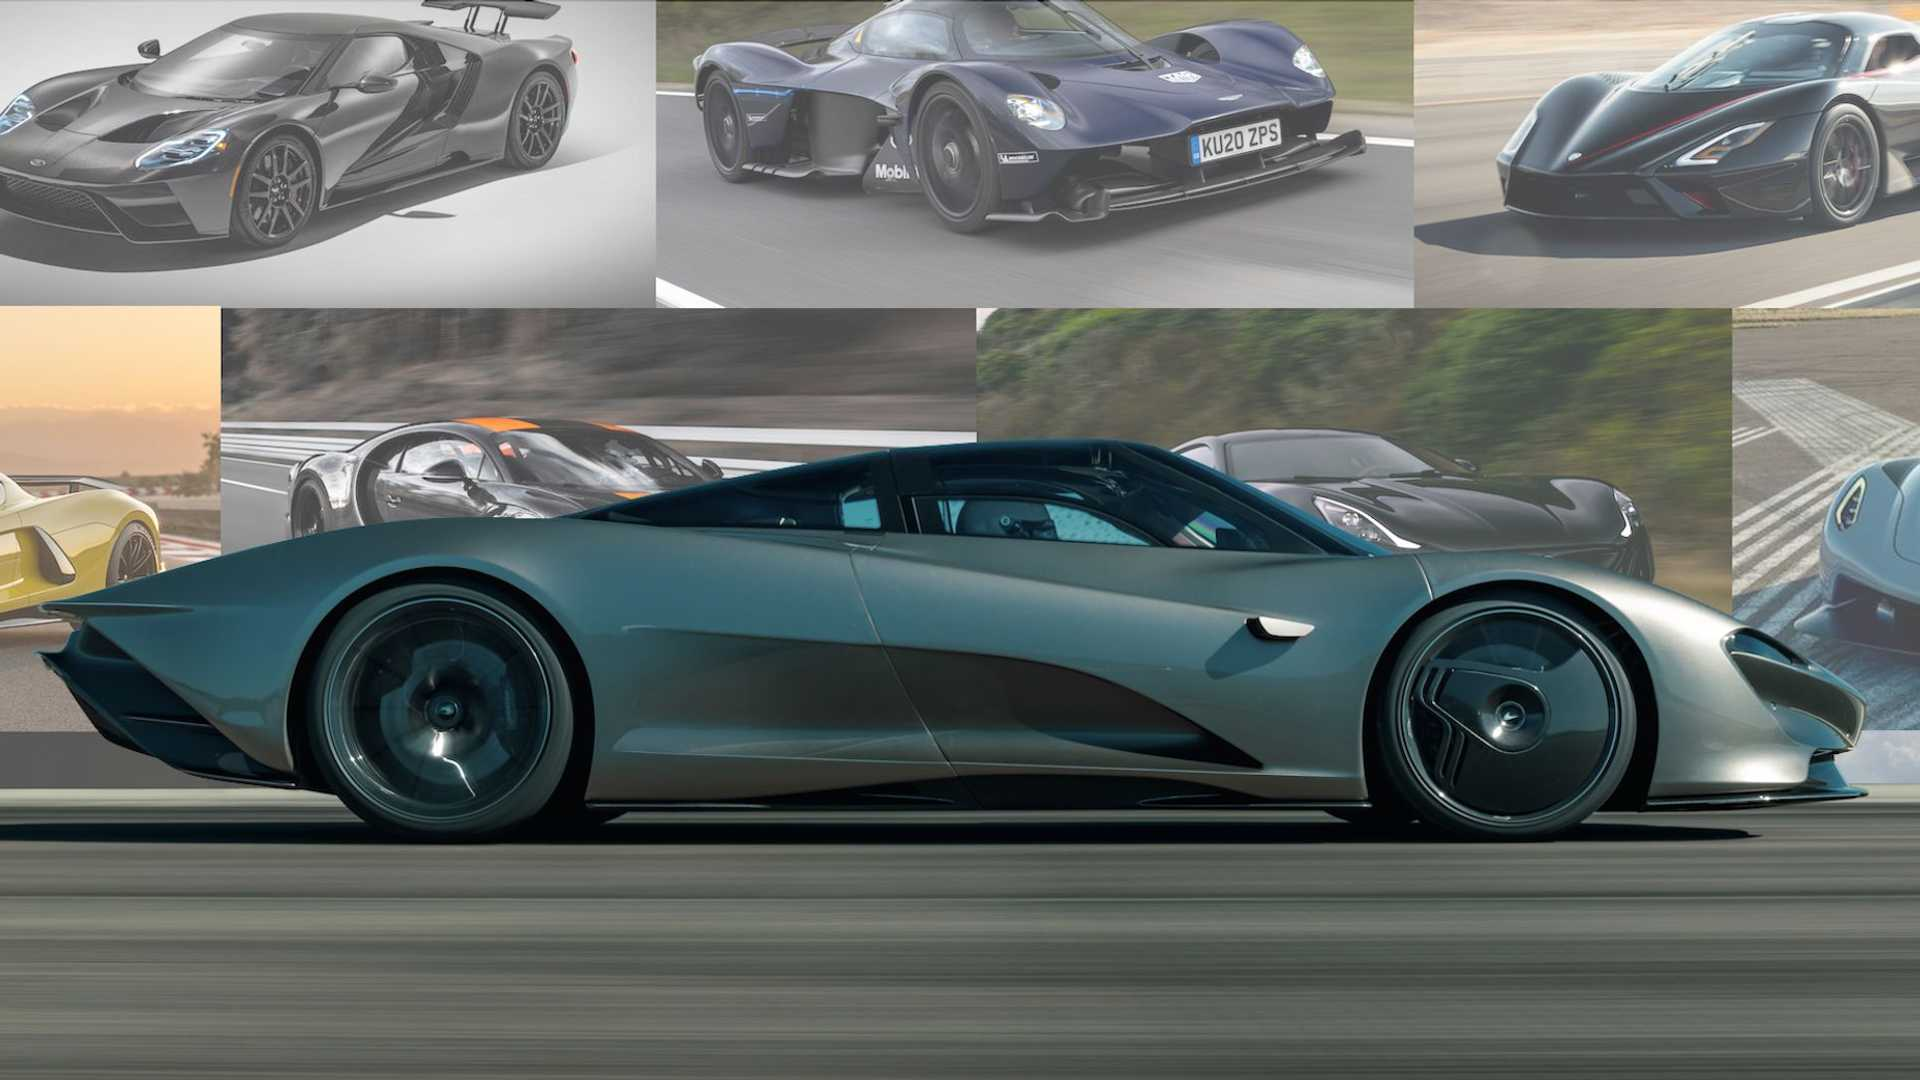 Fastest Cars In The World Best 0 60 And Top Mph Motor1 Com